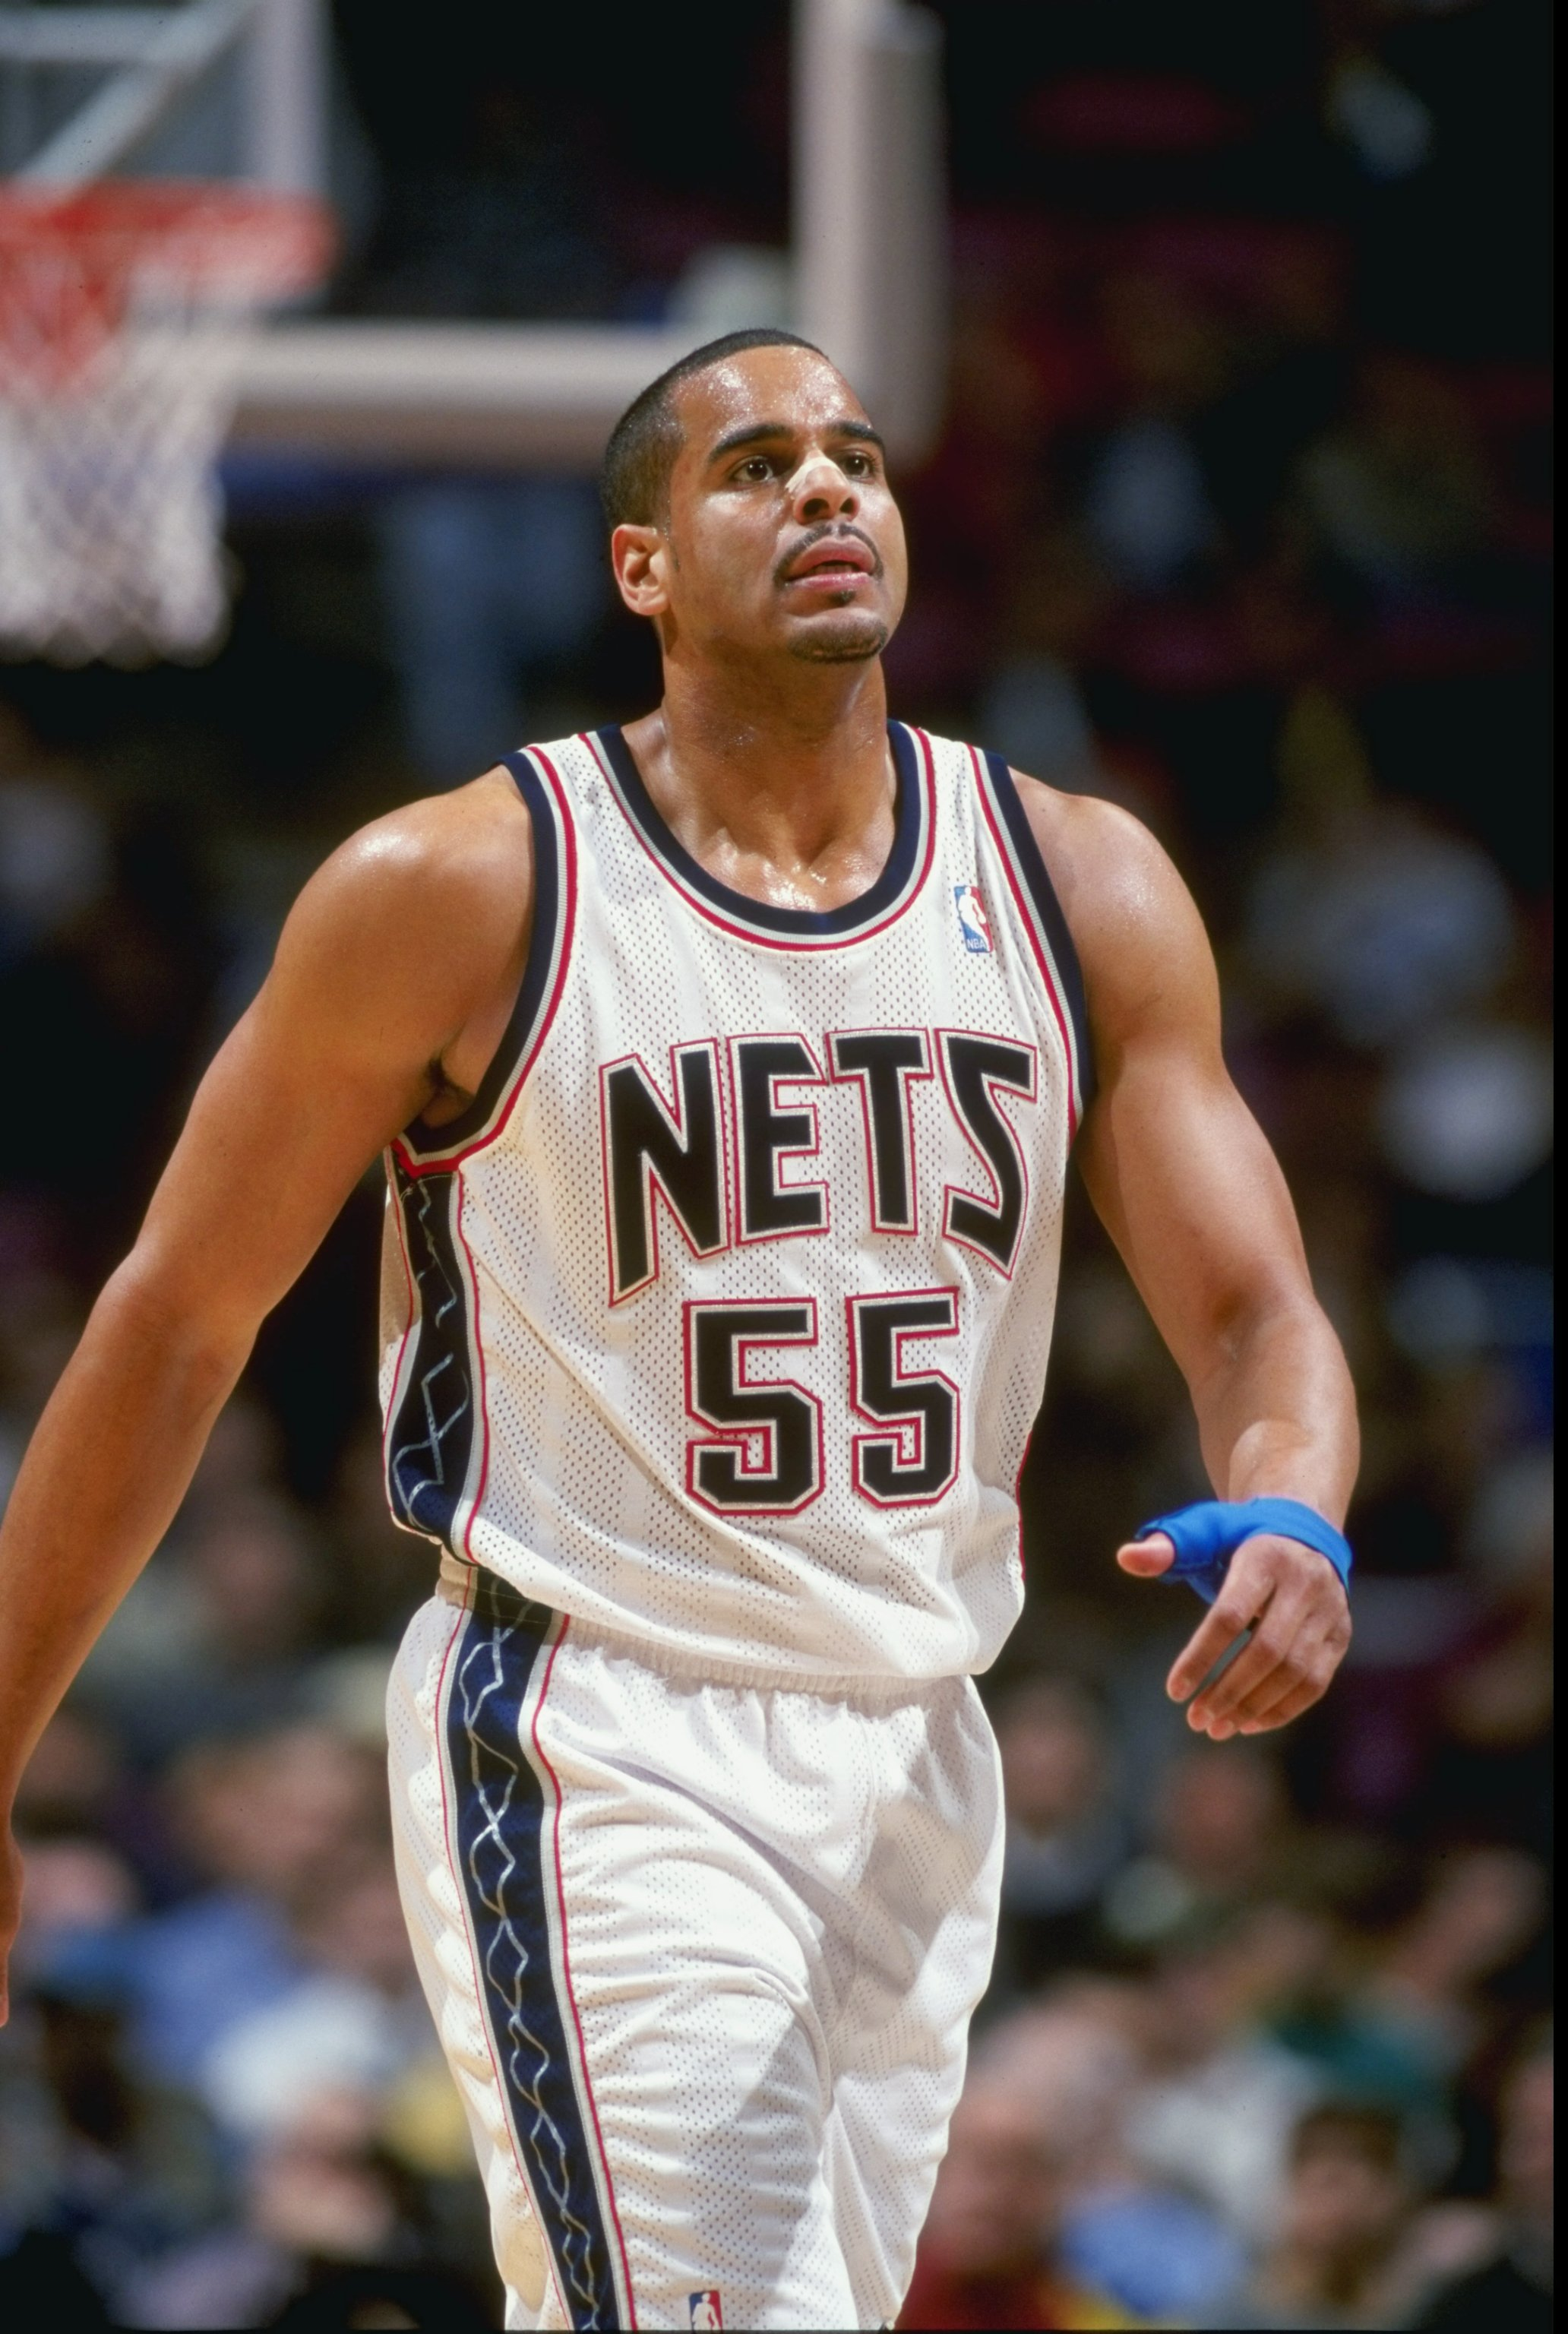 17 Mar 1999:  Jayson Williams #55 of the New Jersey Nets looking on during the game against the Dallas Mavericks at the Continental Airlines Arena in East Rutherford, New Jersey. The Nets defeated the Mavericks 88-87.